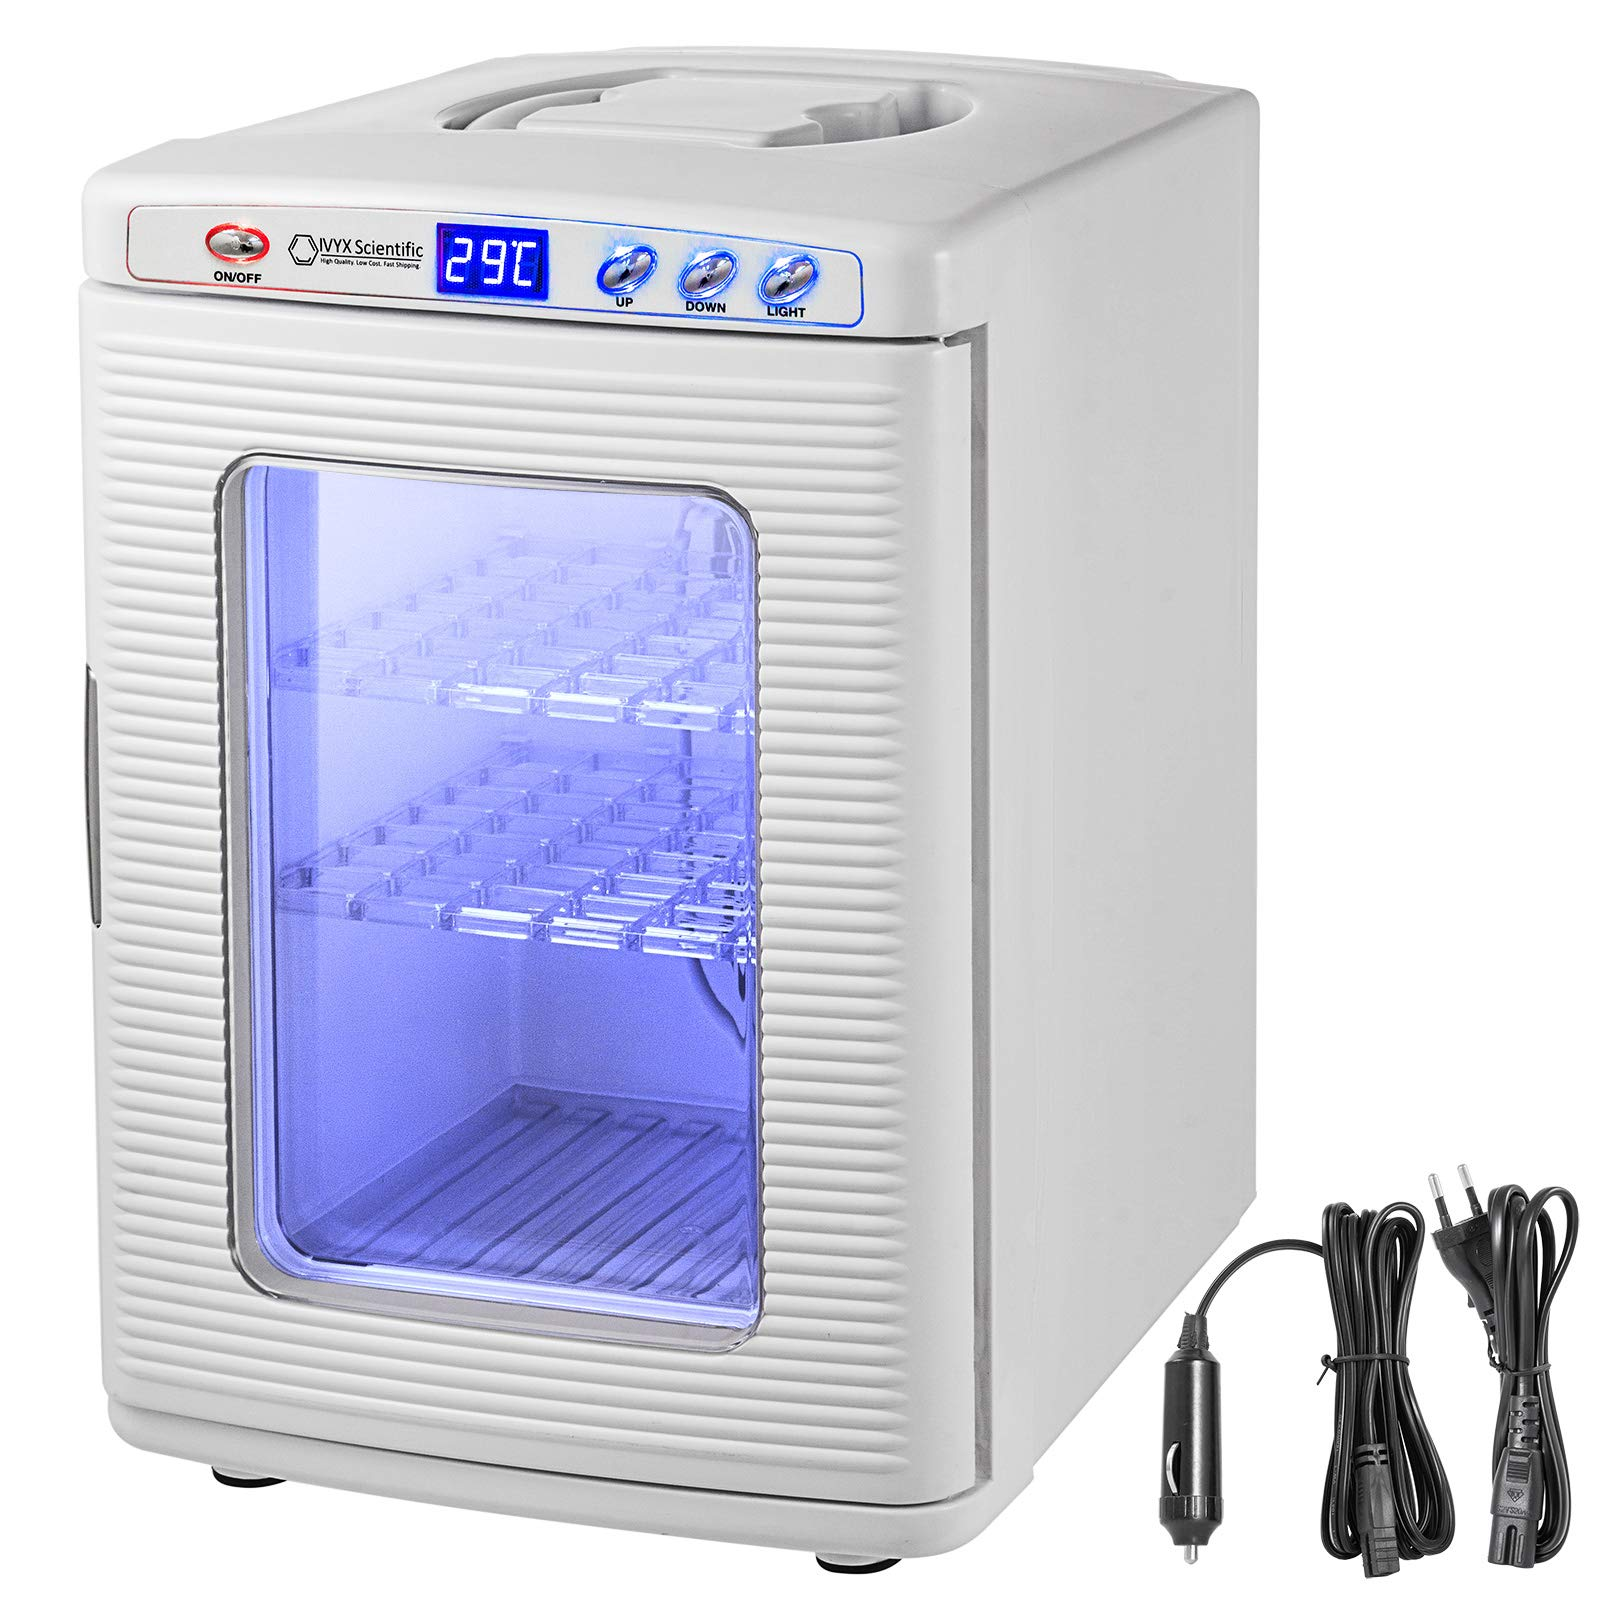 Happybuy 25L Reptile Incubator Scientific Lab Incubator Cooling and Heating 2-60°C 12V/110V Work for Small Reptiles (White)